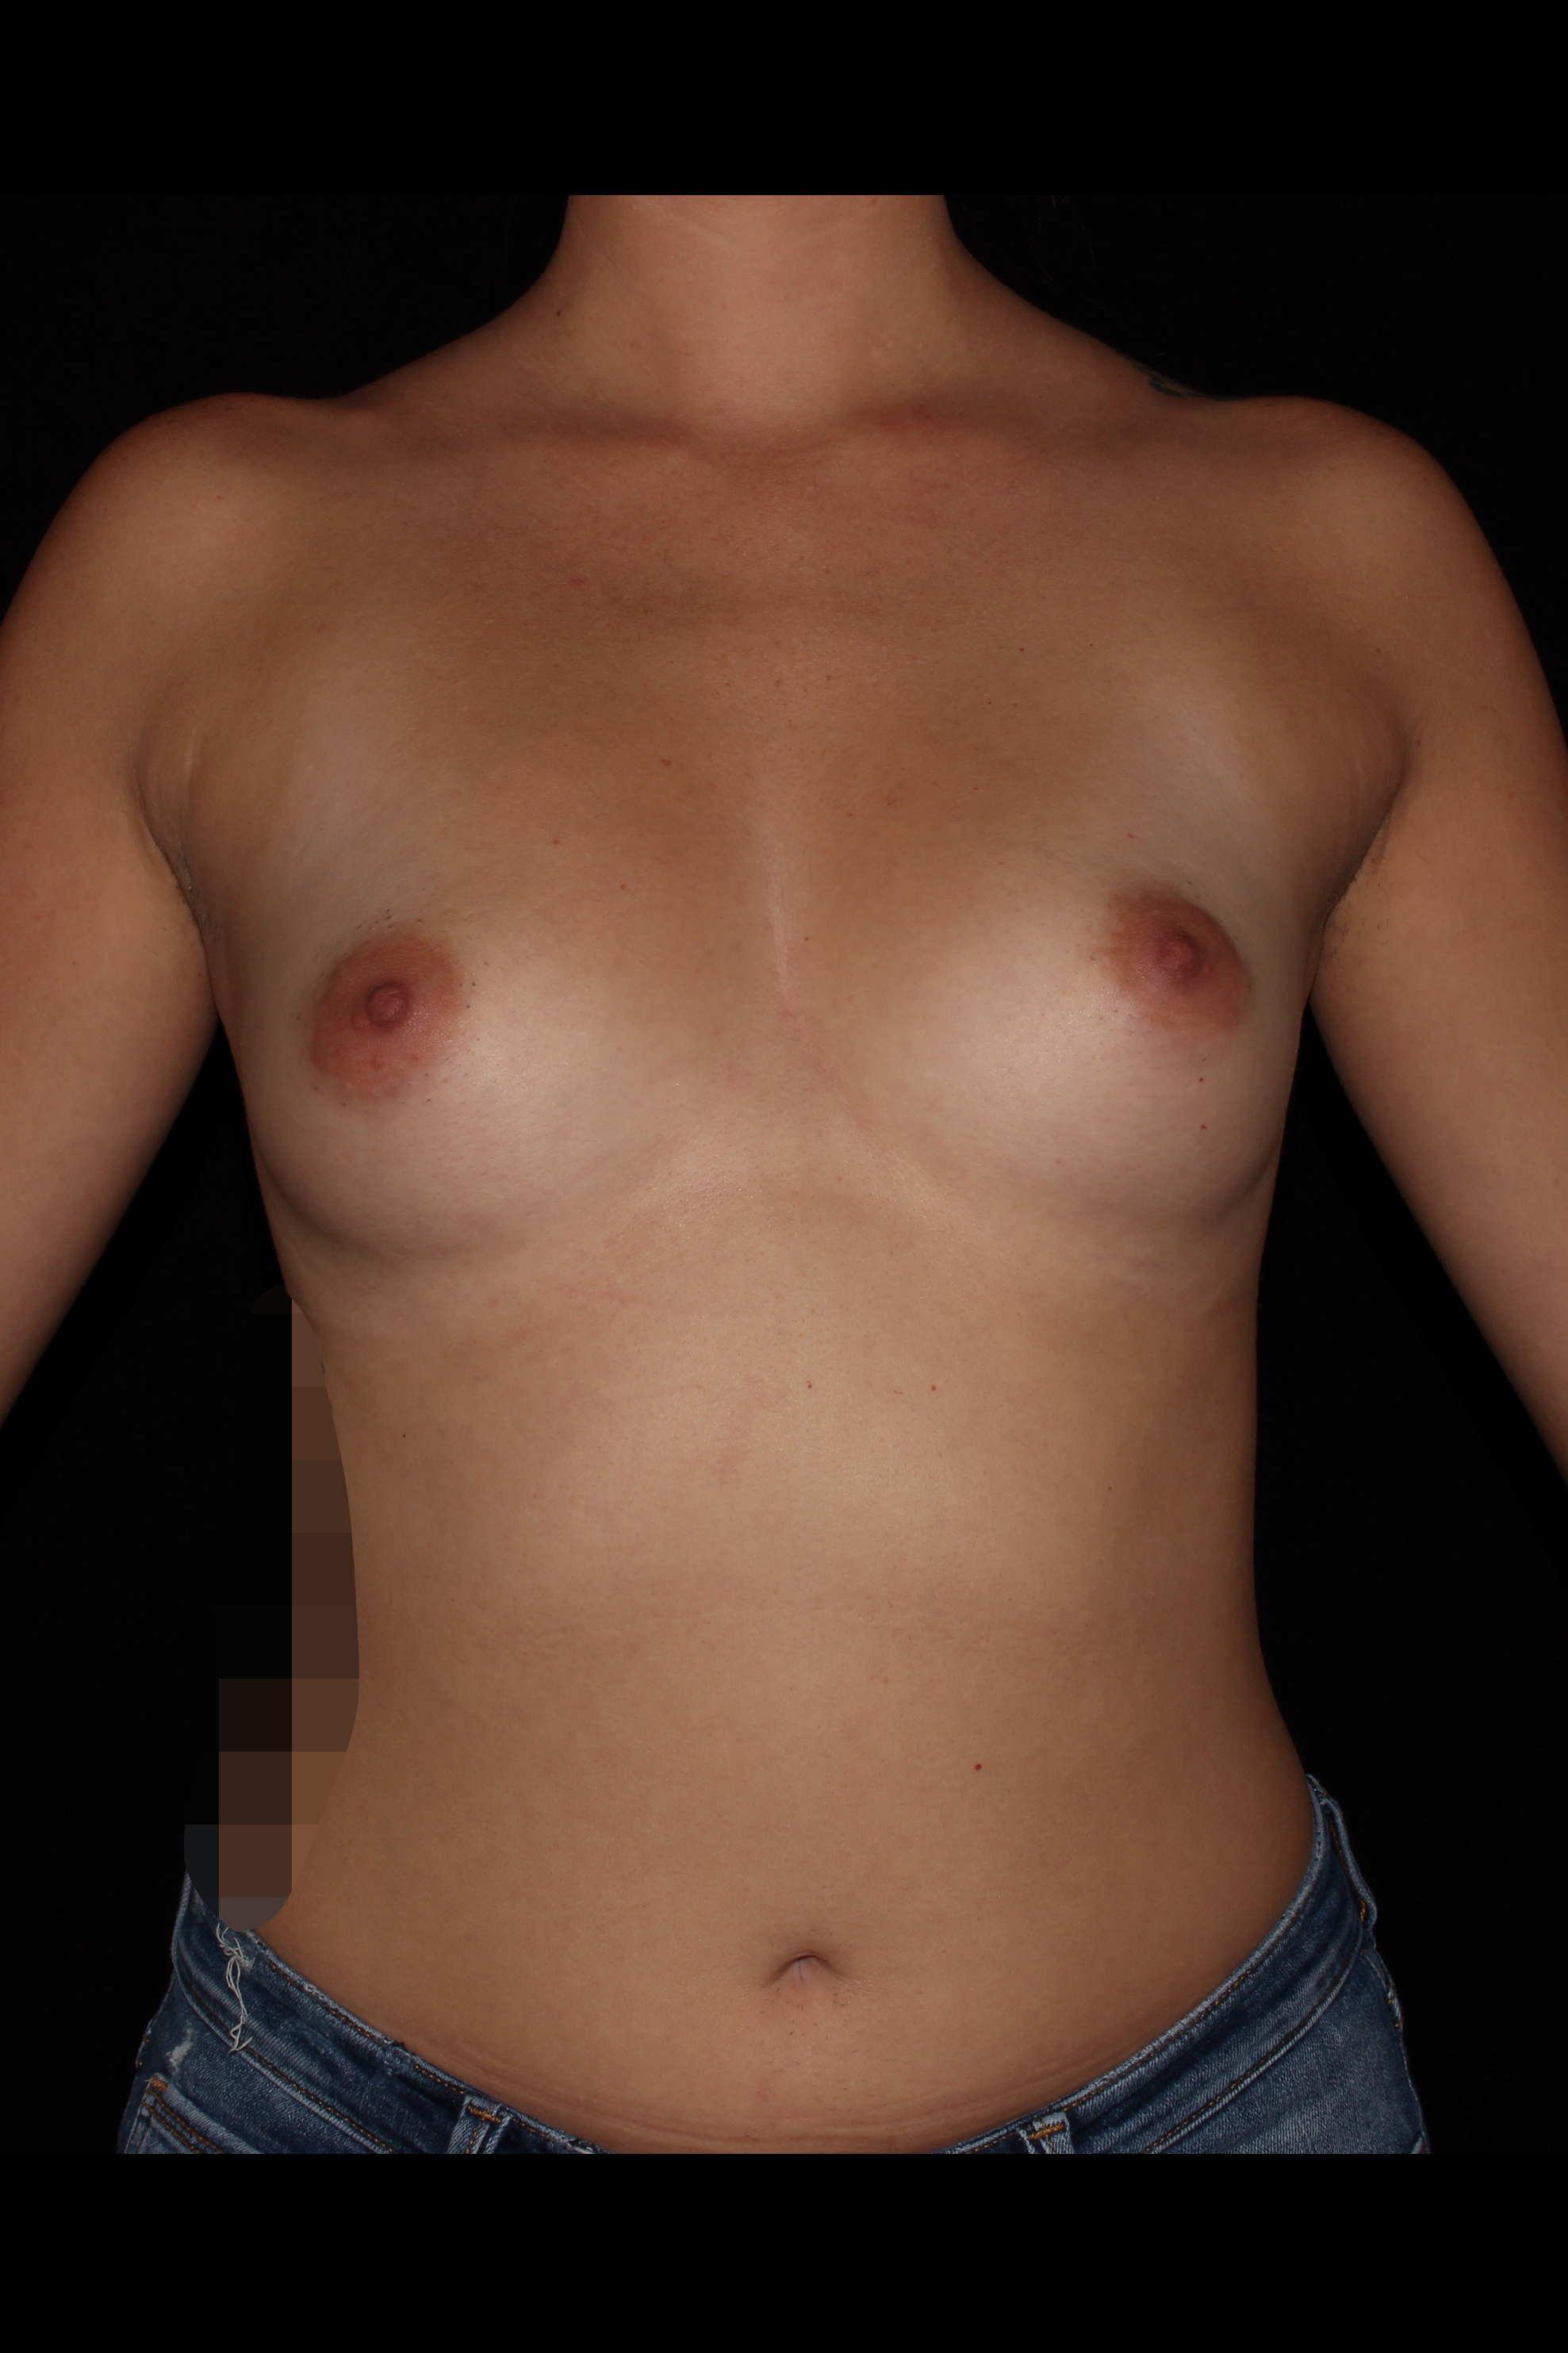 Before Breast Augmentation - 485cc moderate silicone implants with a crescent lift